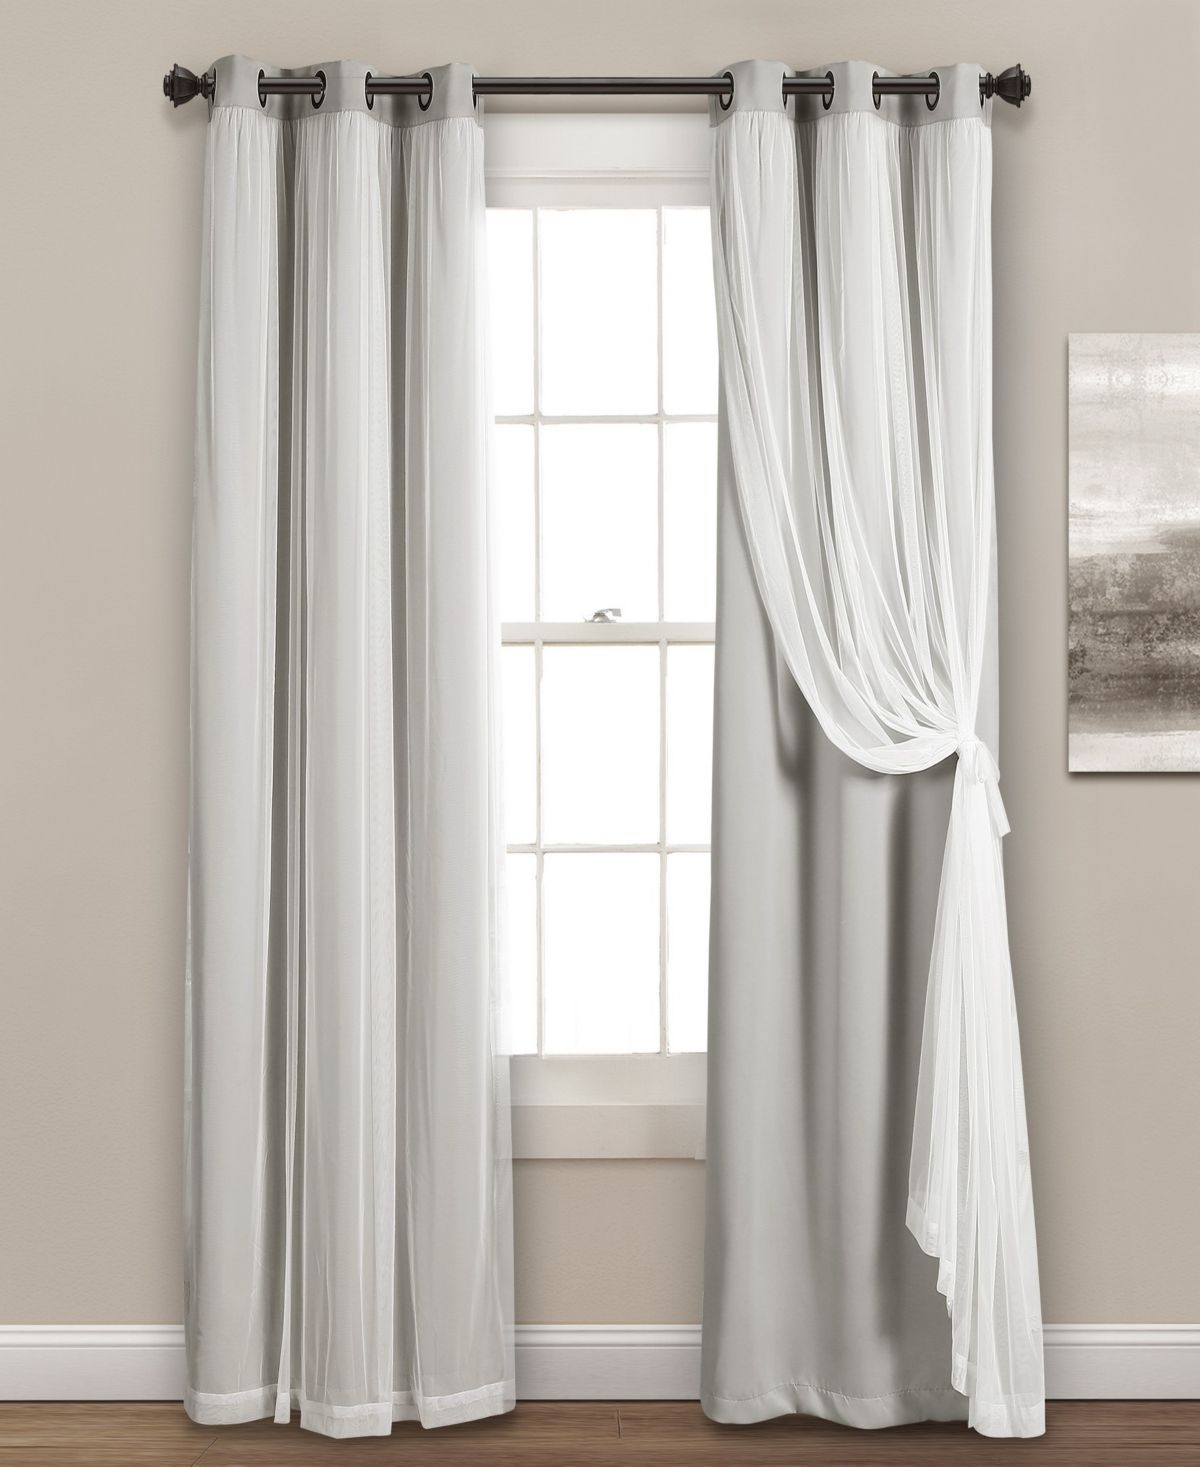 Lush Decor Solid And Sheer Layered 38 X 120 Blackout Curtain Set